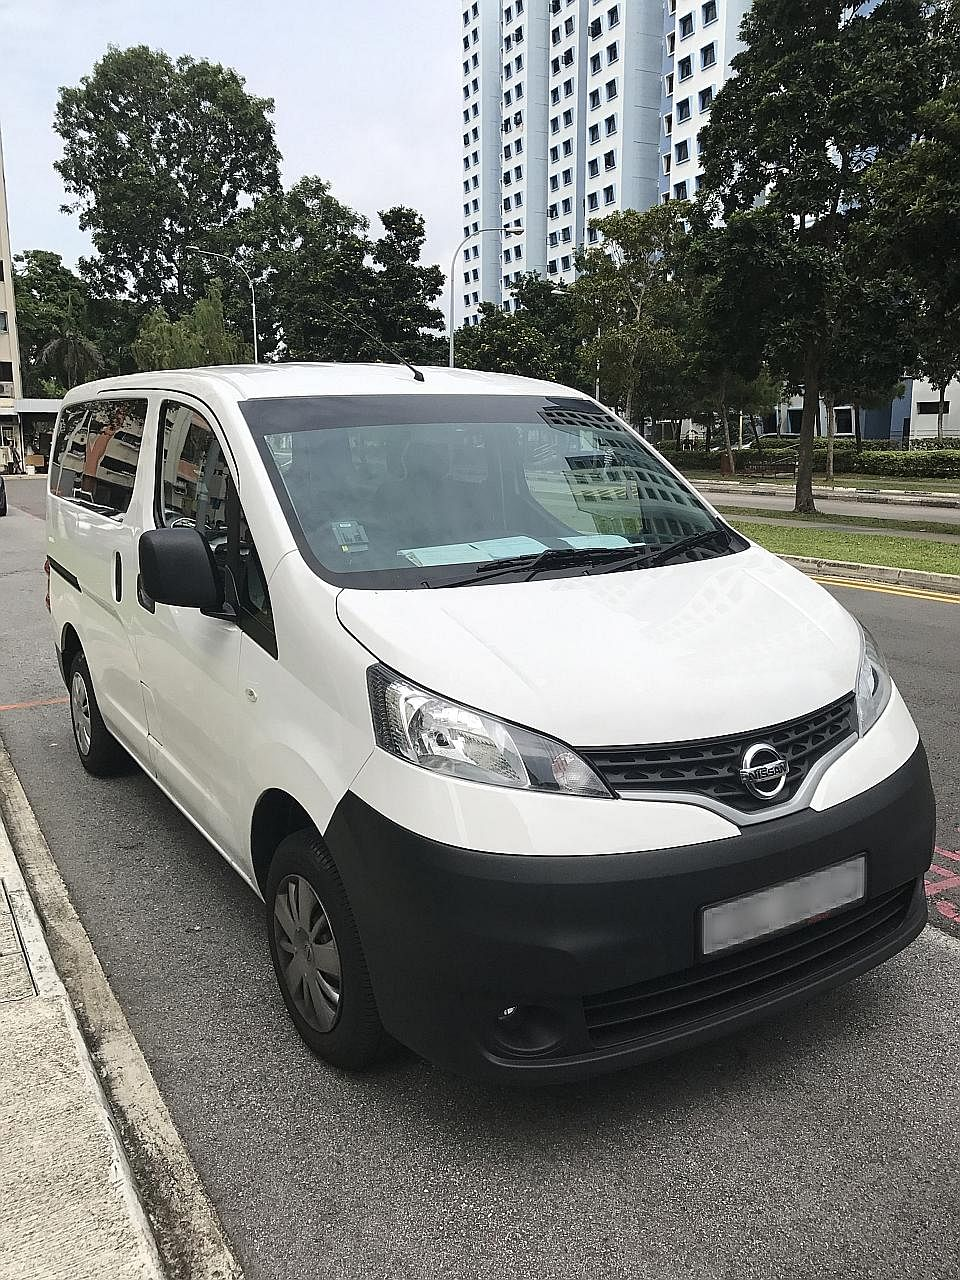 Mr Khristian Kelvin Koh found that the people who had stolen his van had thrown away many of his personal belongings. They even altered his licence plate, and clocked around 400km in the 15 hours they had the vehicle.